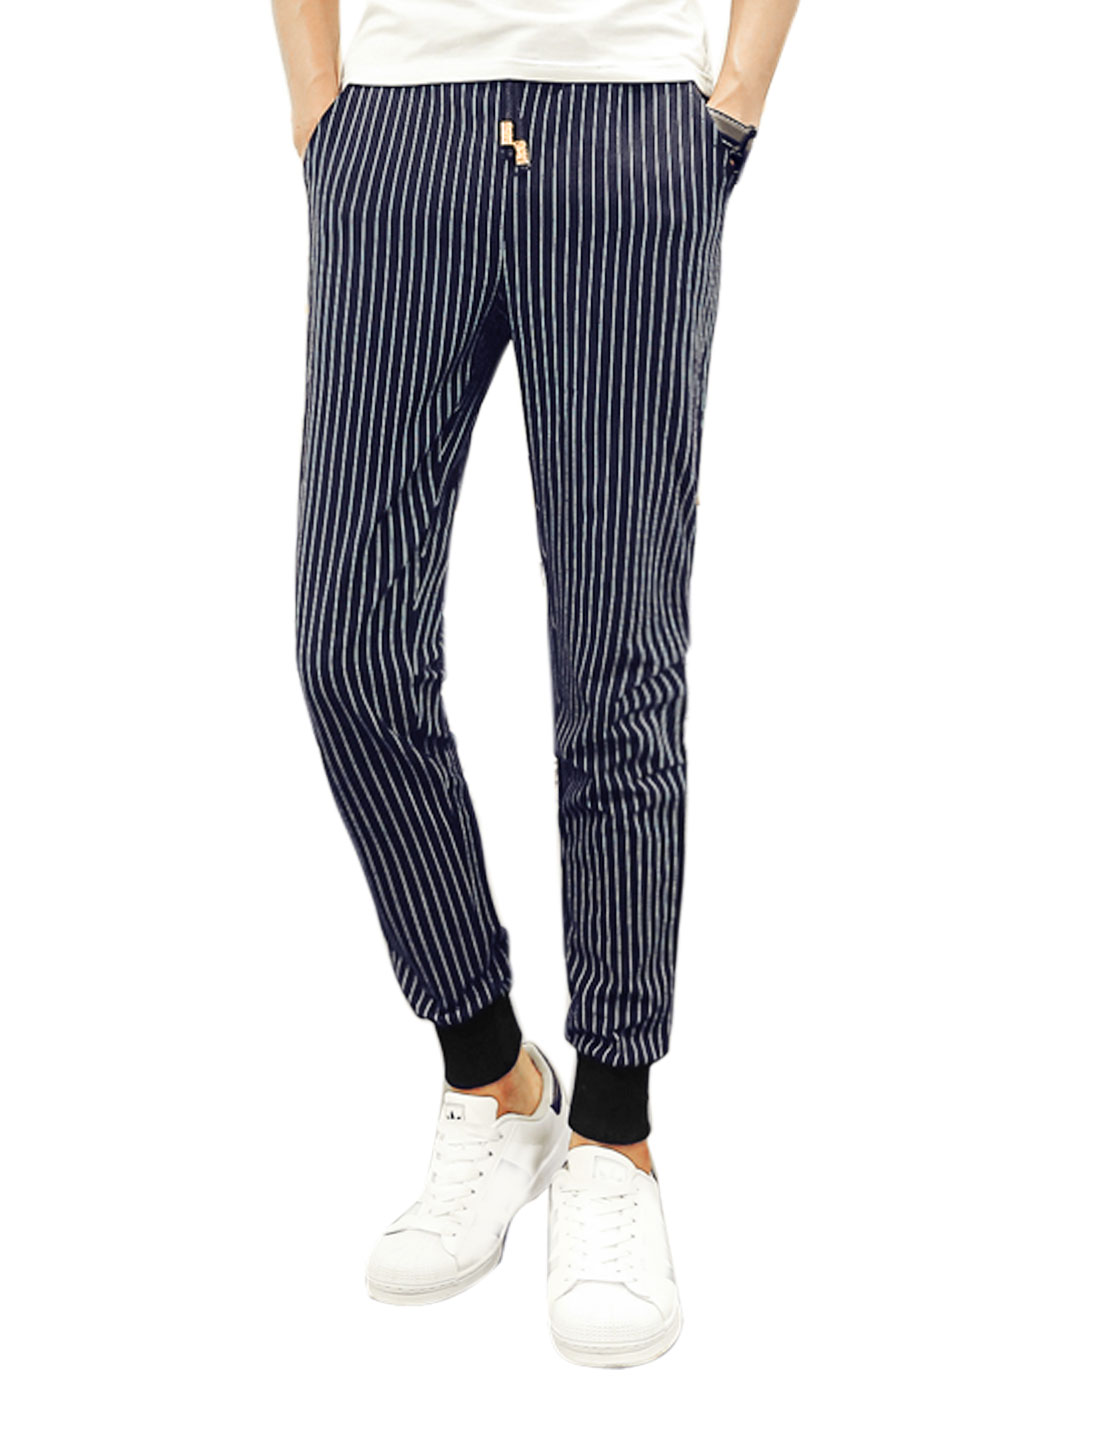 Men Natural Waist Ribbing Cuffs Tapered Stripes Pants Blue W32